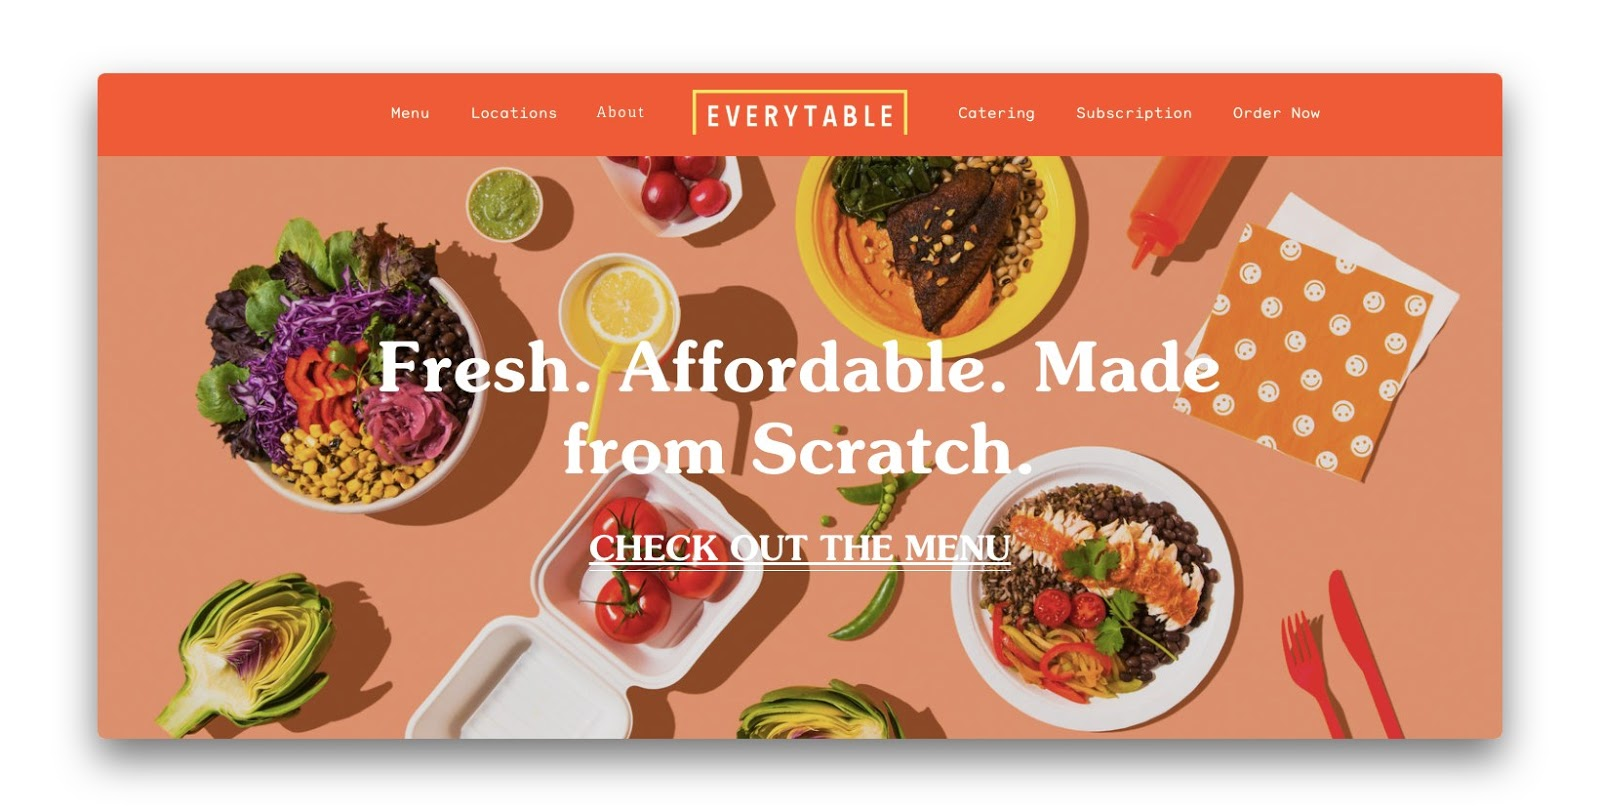 The landing page for Everytable which highlights their core product